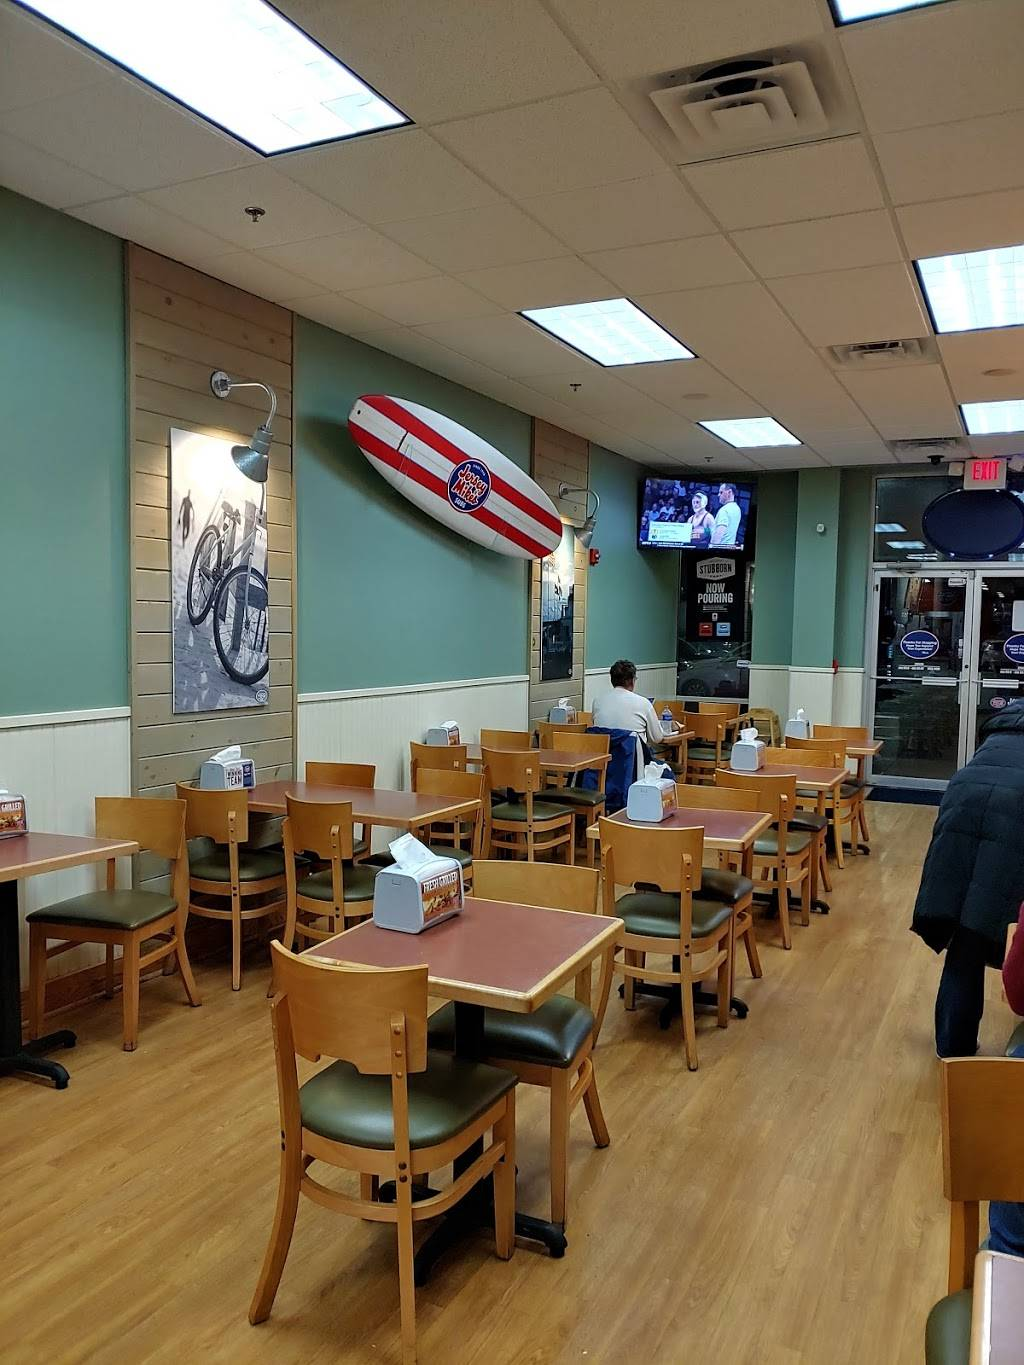 Jersey Mikes Subs | restaurant | 50 NJ-17, East Rutherford, NJ 07073, USA | 2019352088 OR +1 201-935-2088